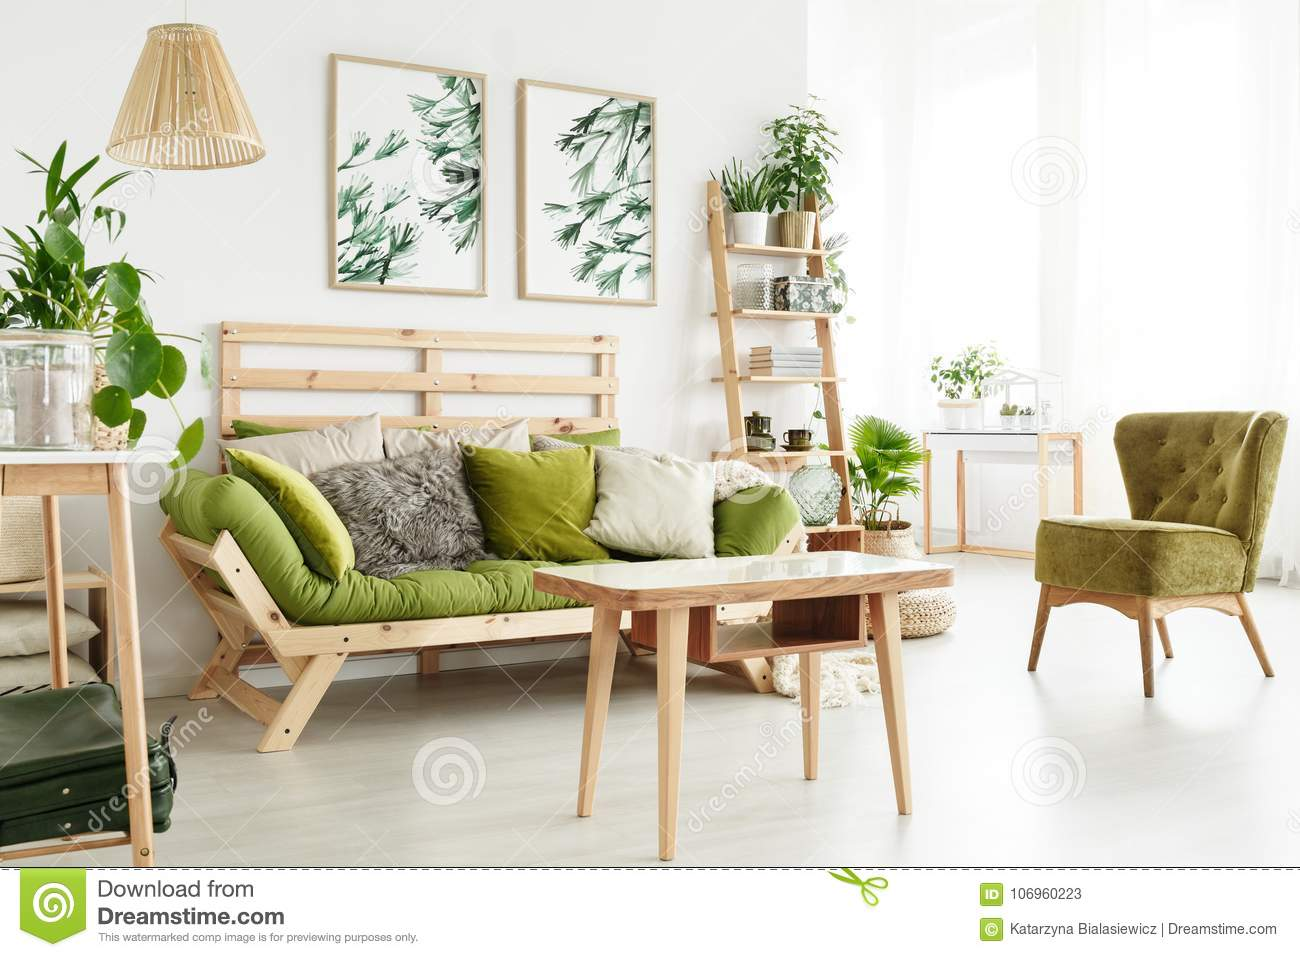 Natural Living Room With Plants Stock Image - Image of sofa, natural ...